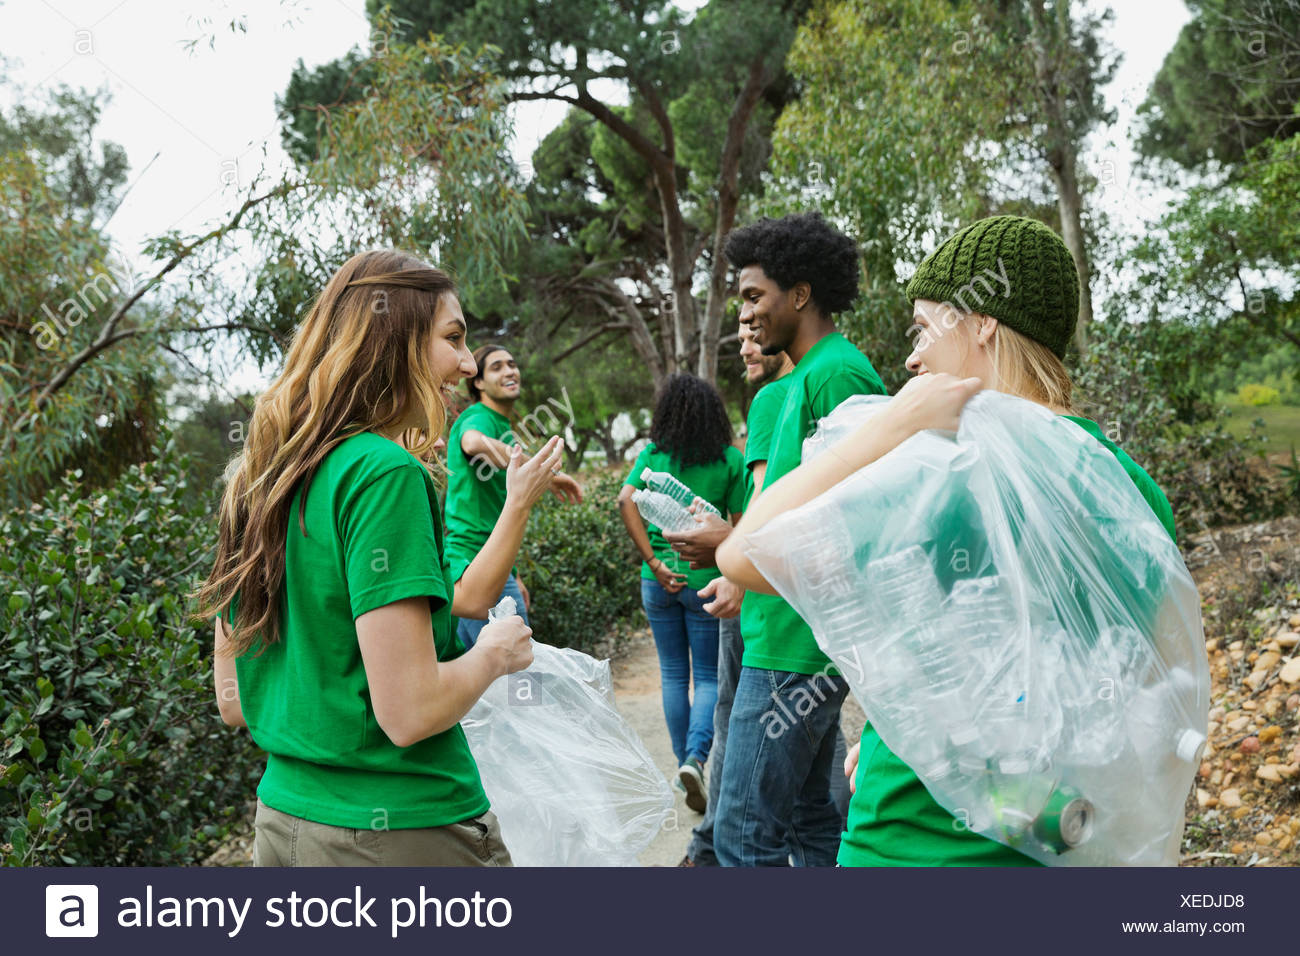 Team of environmentalists with empty bottles and plastic bags in park - Stock Image